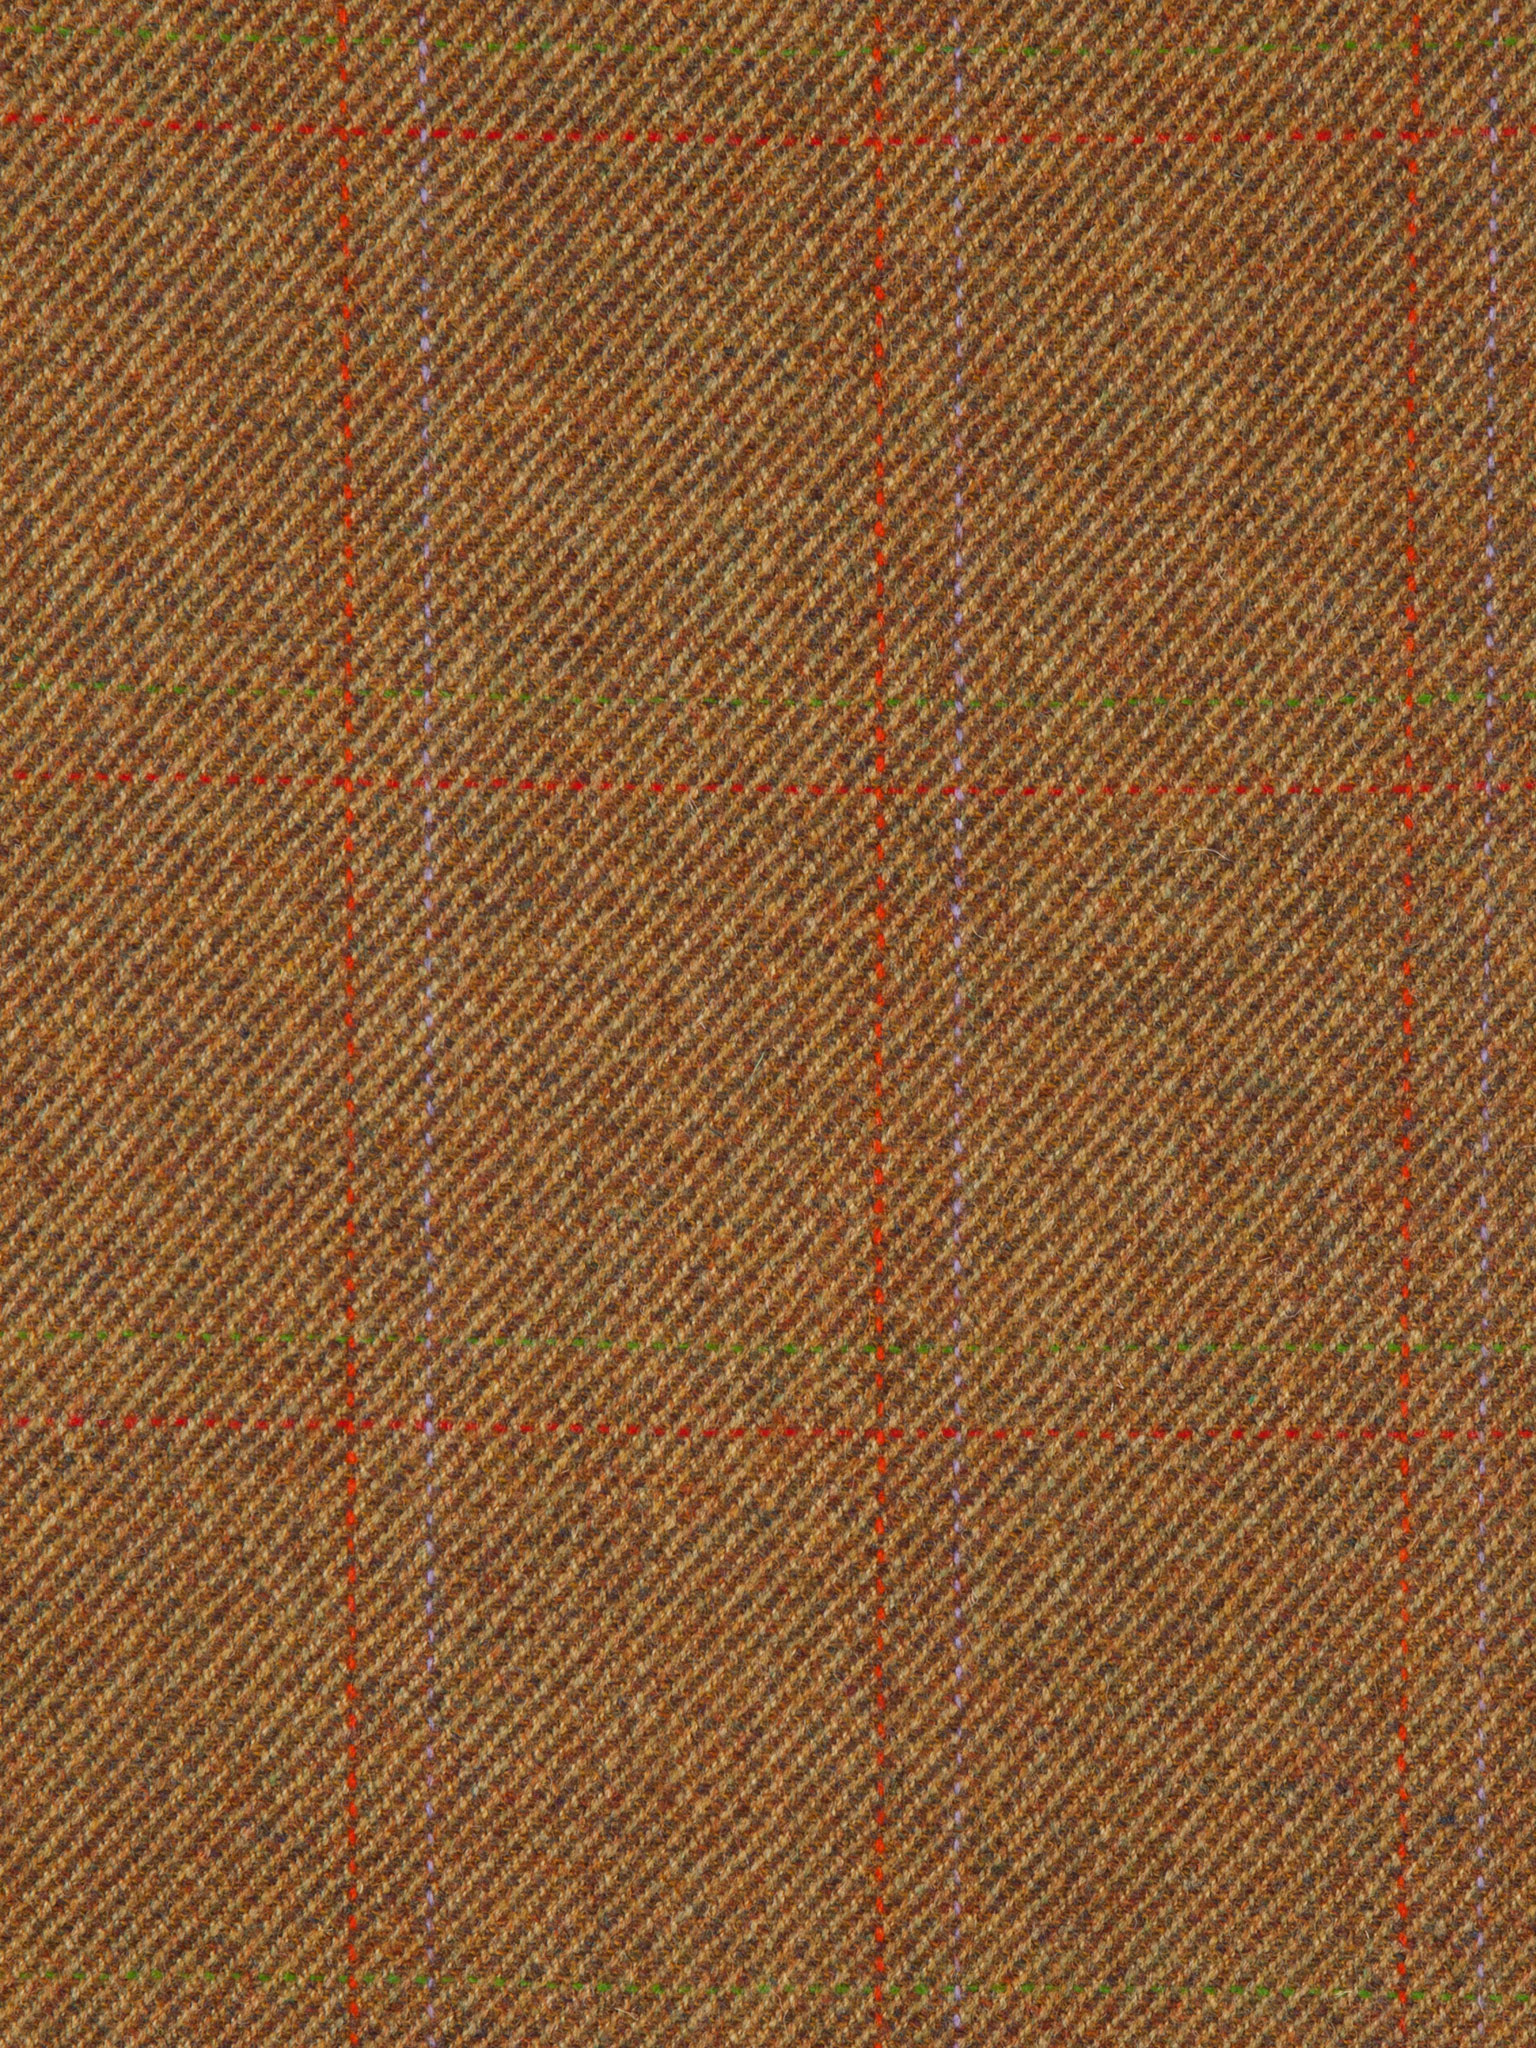 COUNTY TWEED DE12045